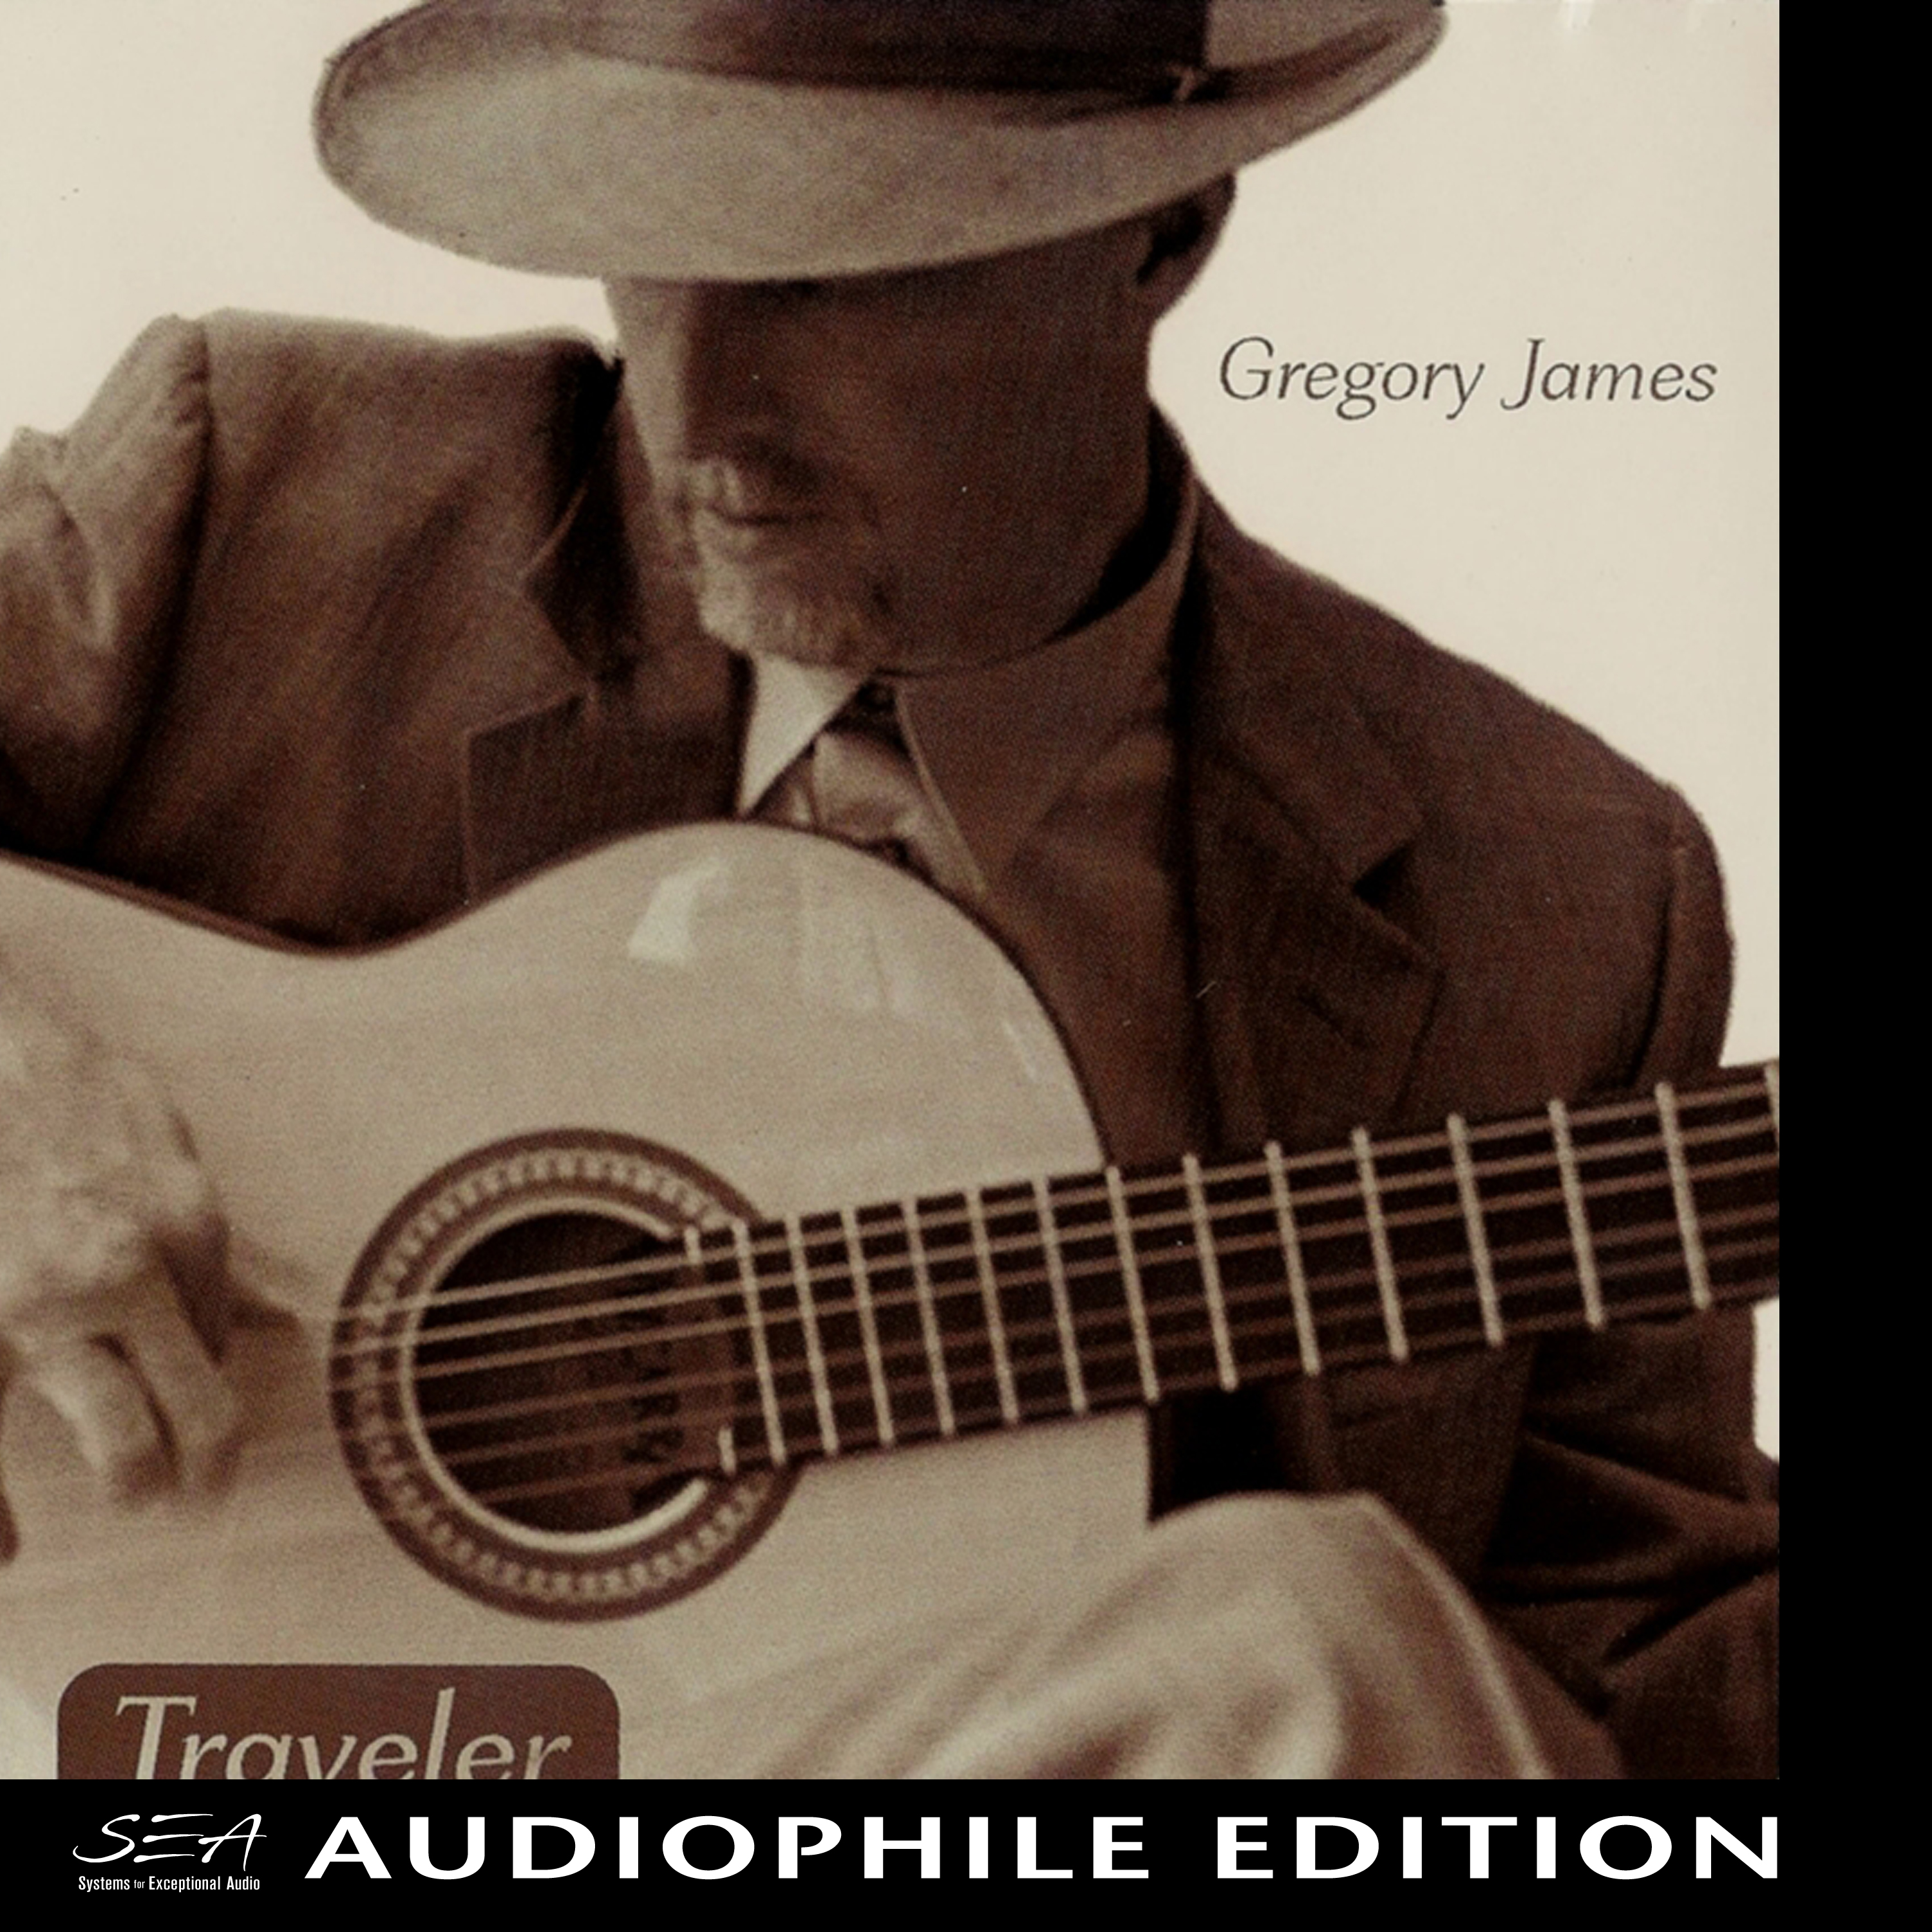 Gregory James - Traveler - Cover Image